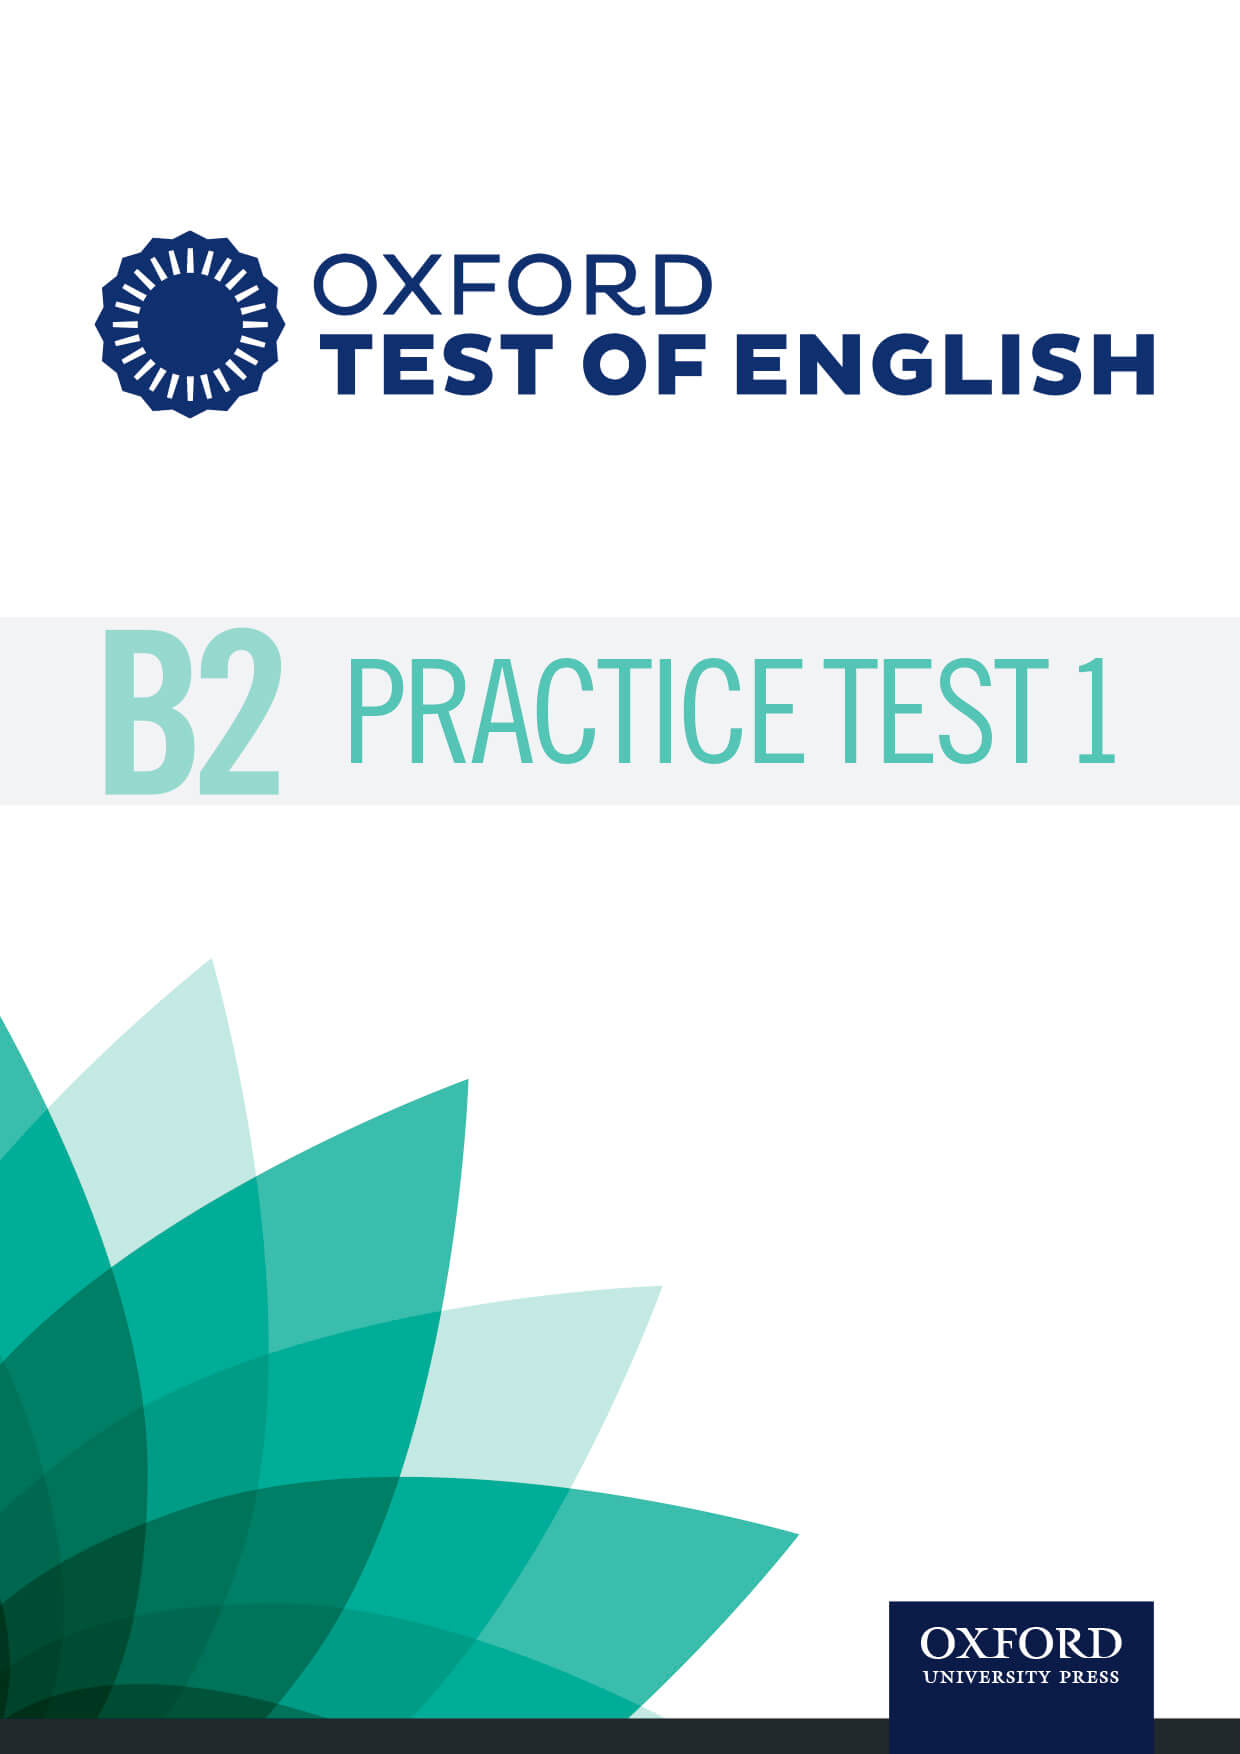 oxford test of english practice pack b1 pdf download